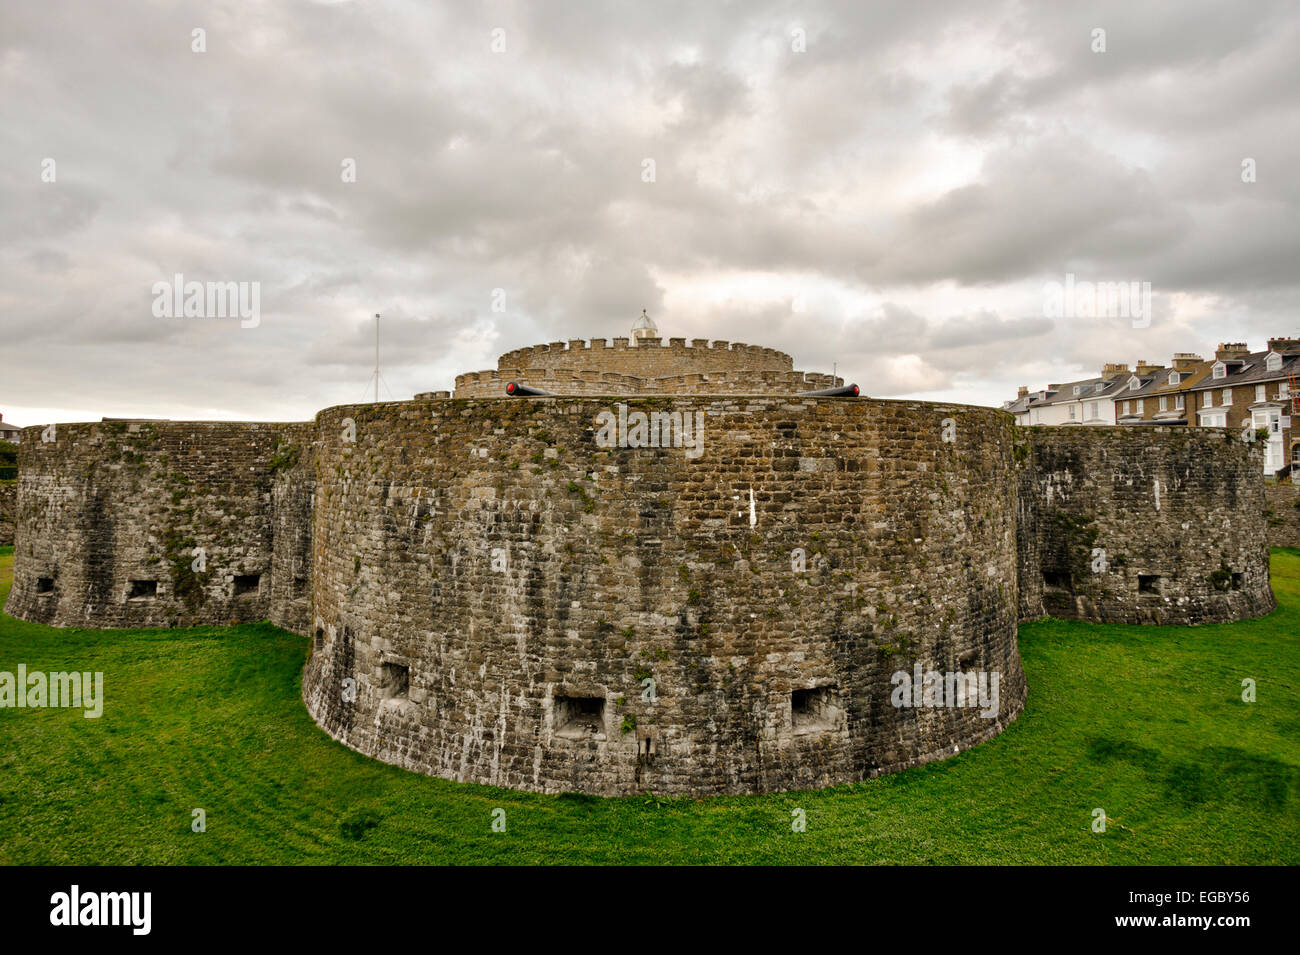 England deal castle outer walls and moat with keep in castle outer walls and moat with keep in background under grey cloudy sky hdr realistic altavistaventures Gallery